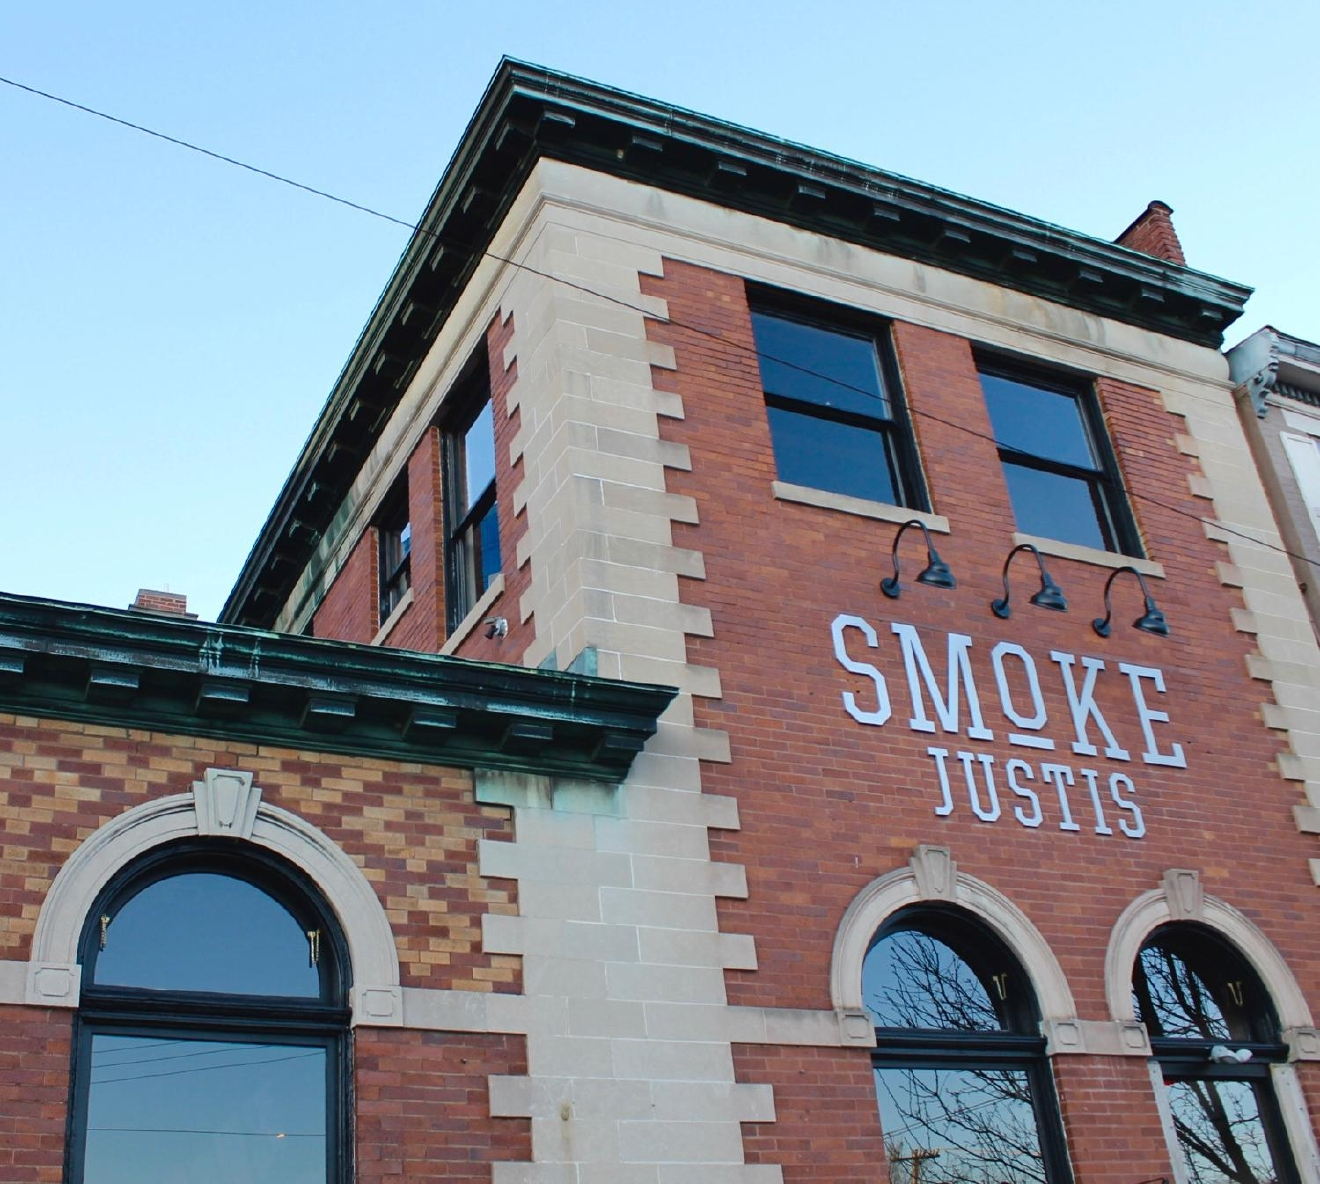 Smoke Justis, named after the 1913 Covington Blue Sox pitcher, is a new sports bar and restaurant which specializes in smoked meats and craft beer. It also sports a wide selection of bourbon and a room filled with old arcade games. / ADDRESS: 302 Court St., Covington, KY 41011. / Image: Rose Brewington // Published: 1.18.17